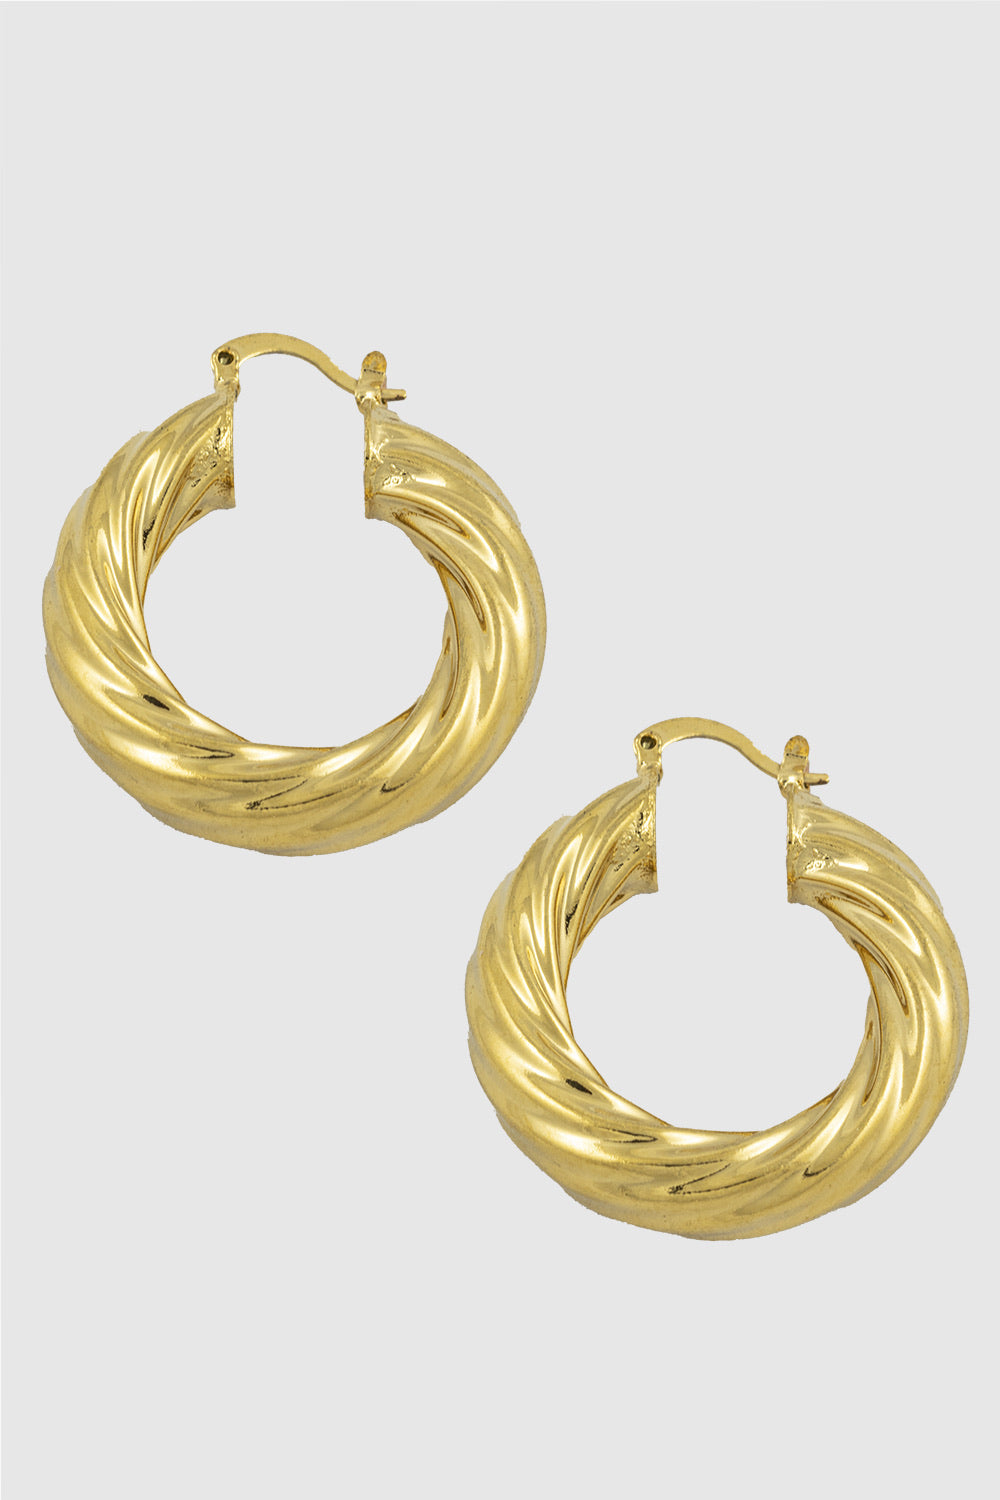 Grooved hoop earrings